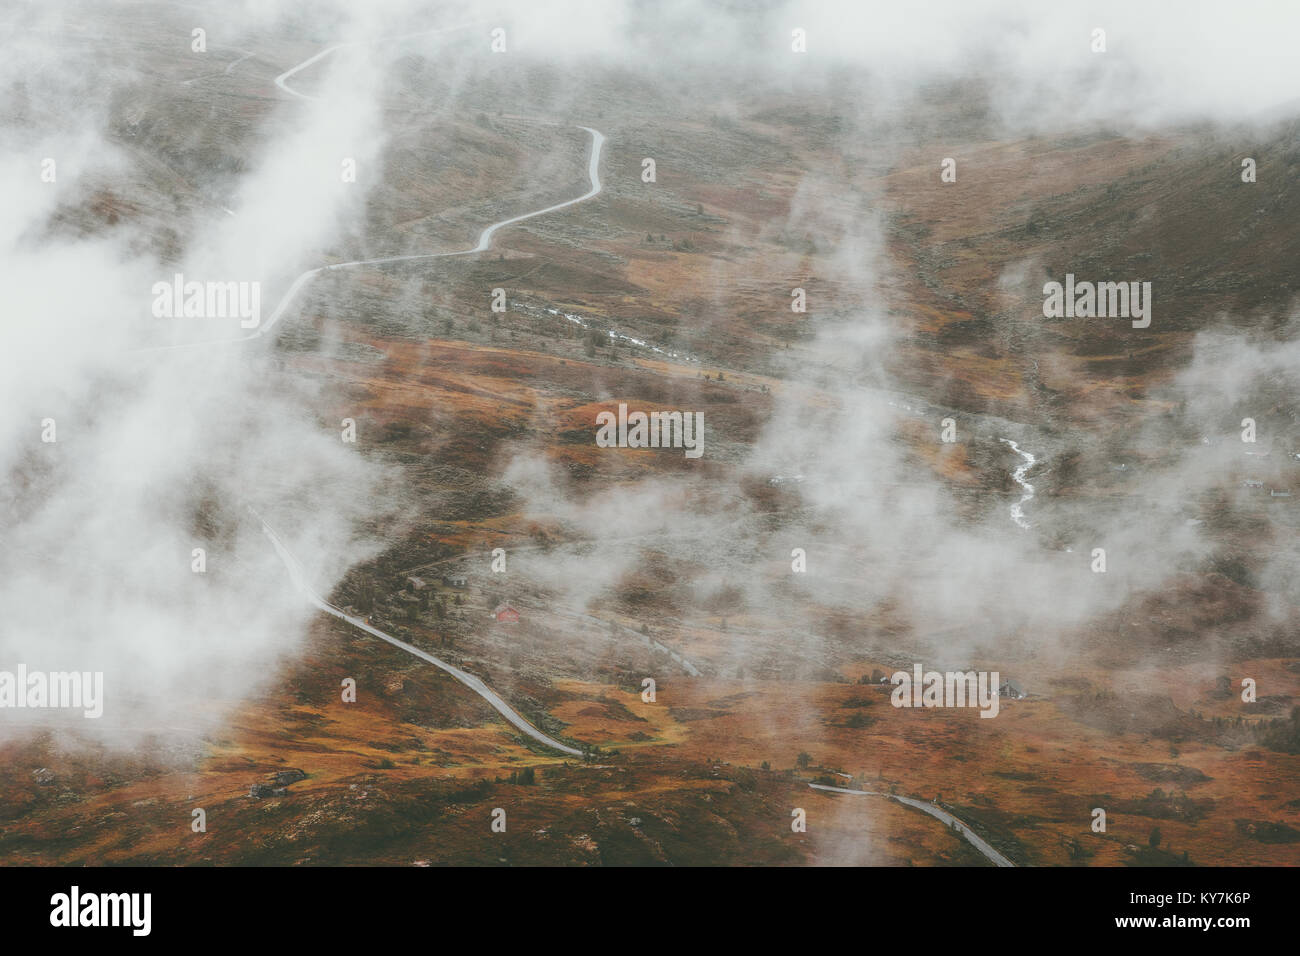 Foggy clouds tundra mountains and road Landscape in Jotunheimen national park Norway Travel scenery aerial view - Stock Image